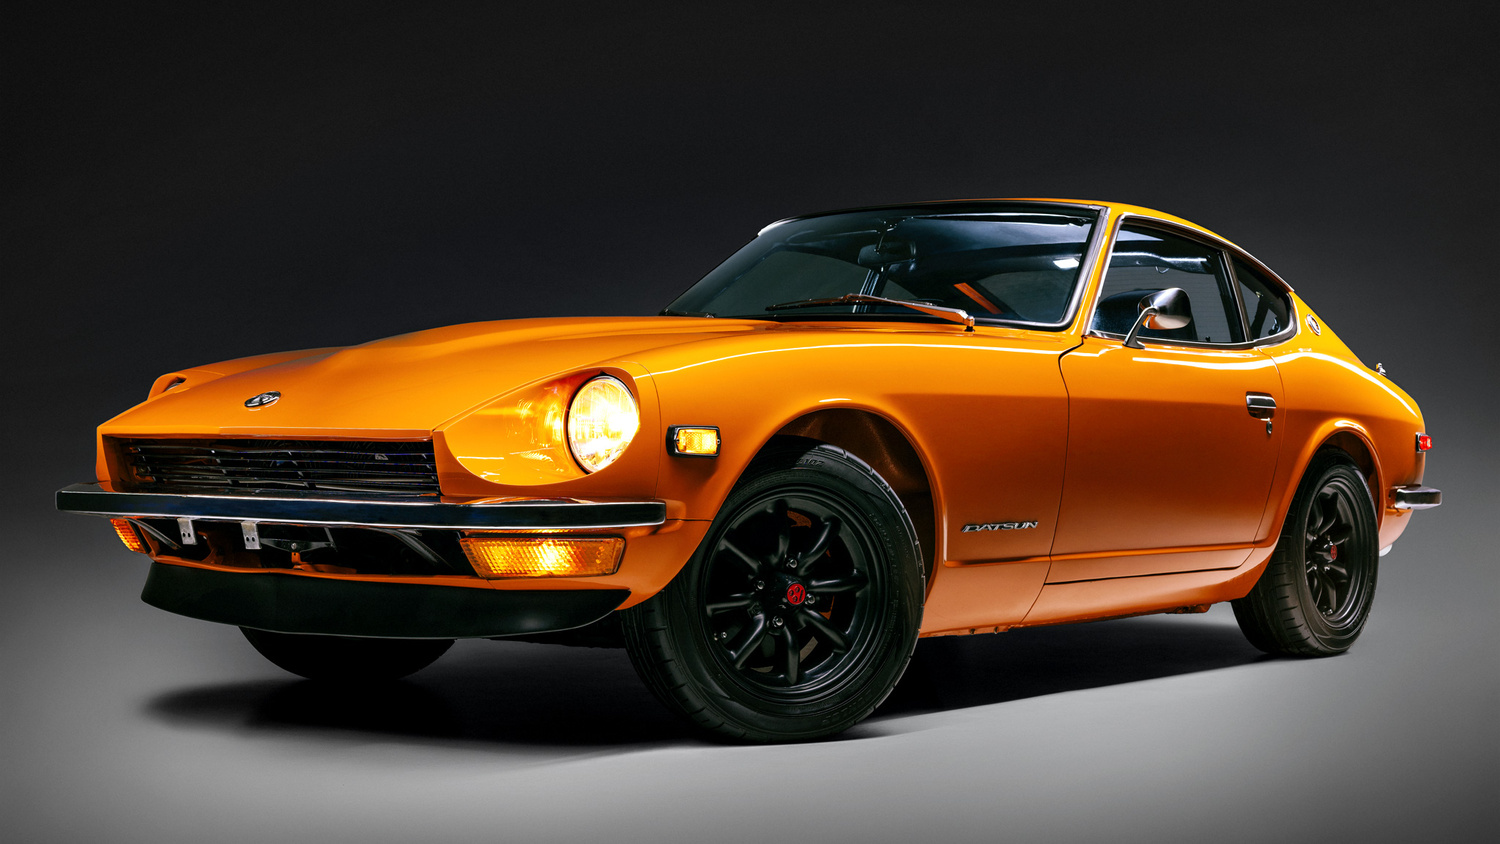 1973 Datsun 240Z FP by Jan Gonzales